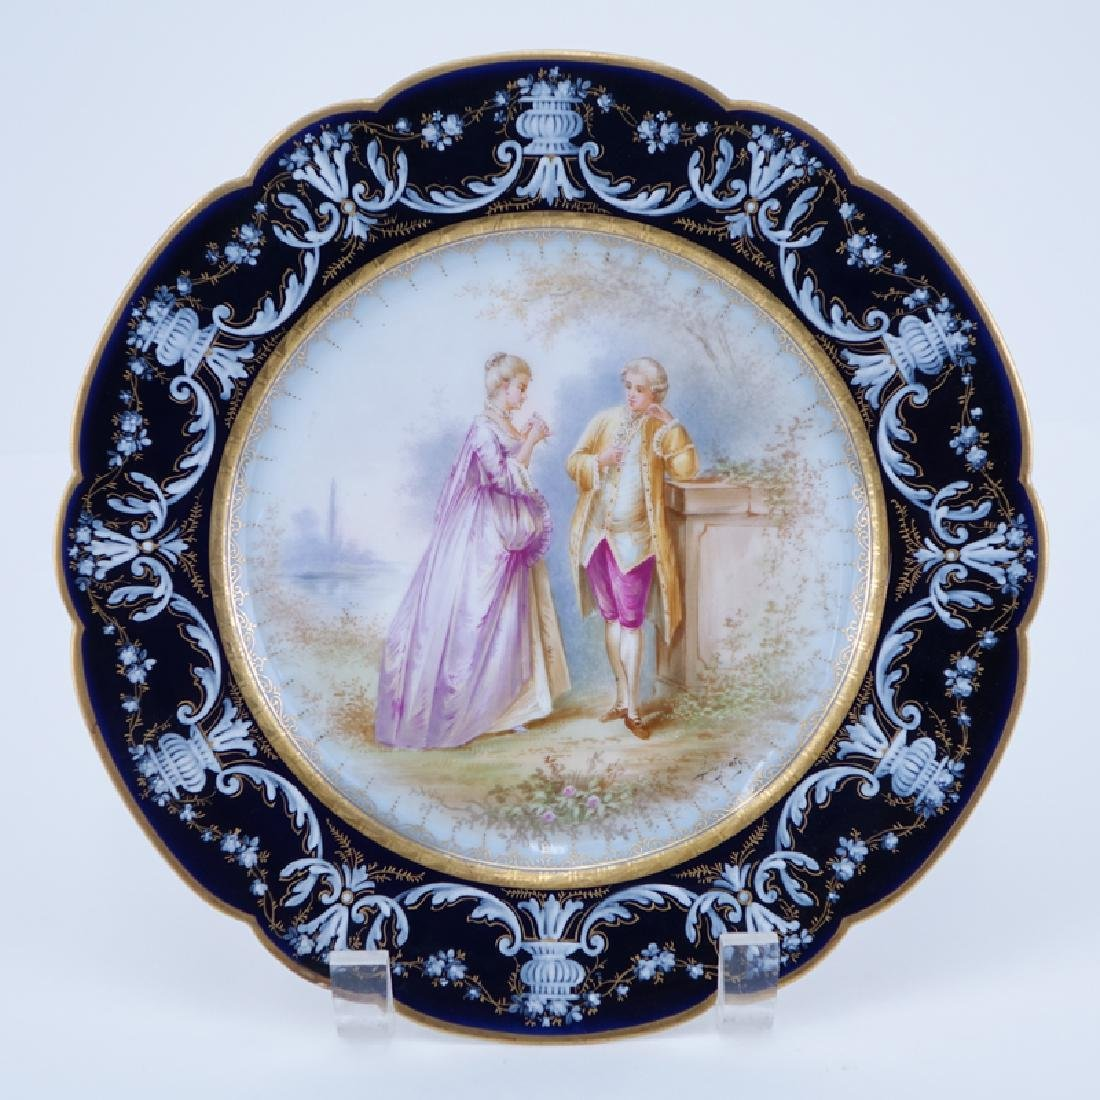 19/20th Century Sevres Portrait Plate. Painted with a